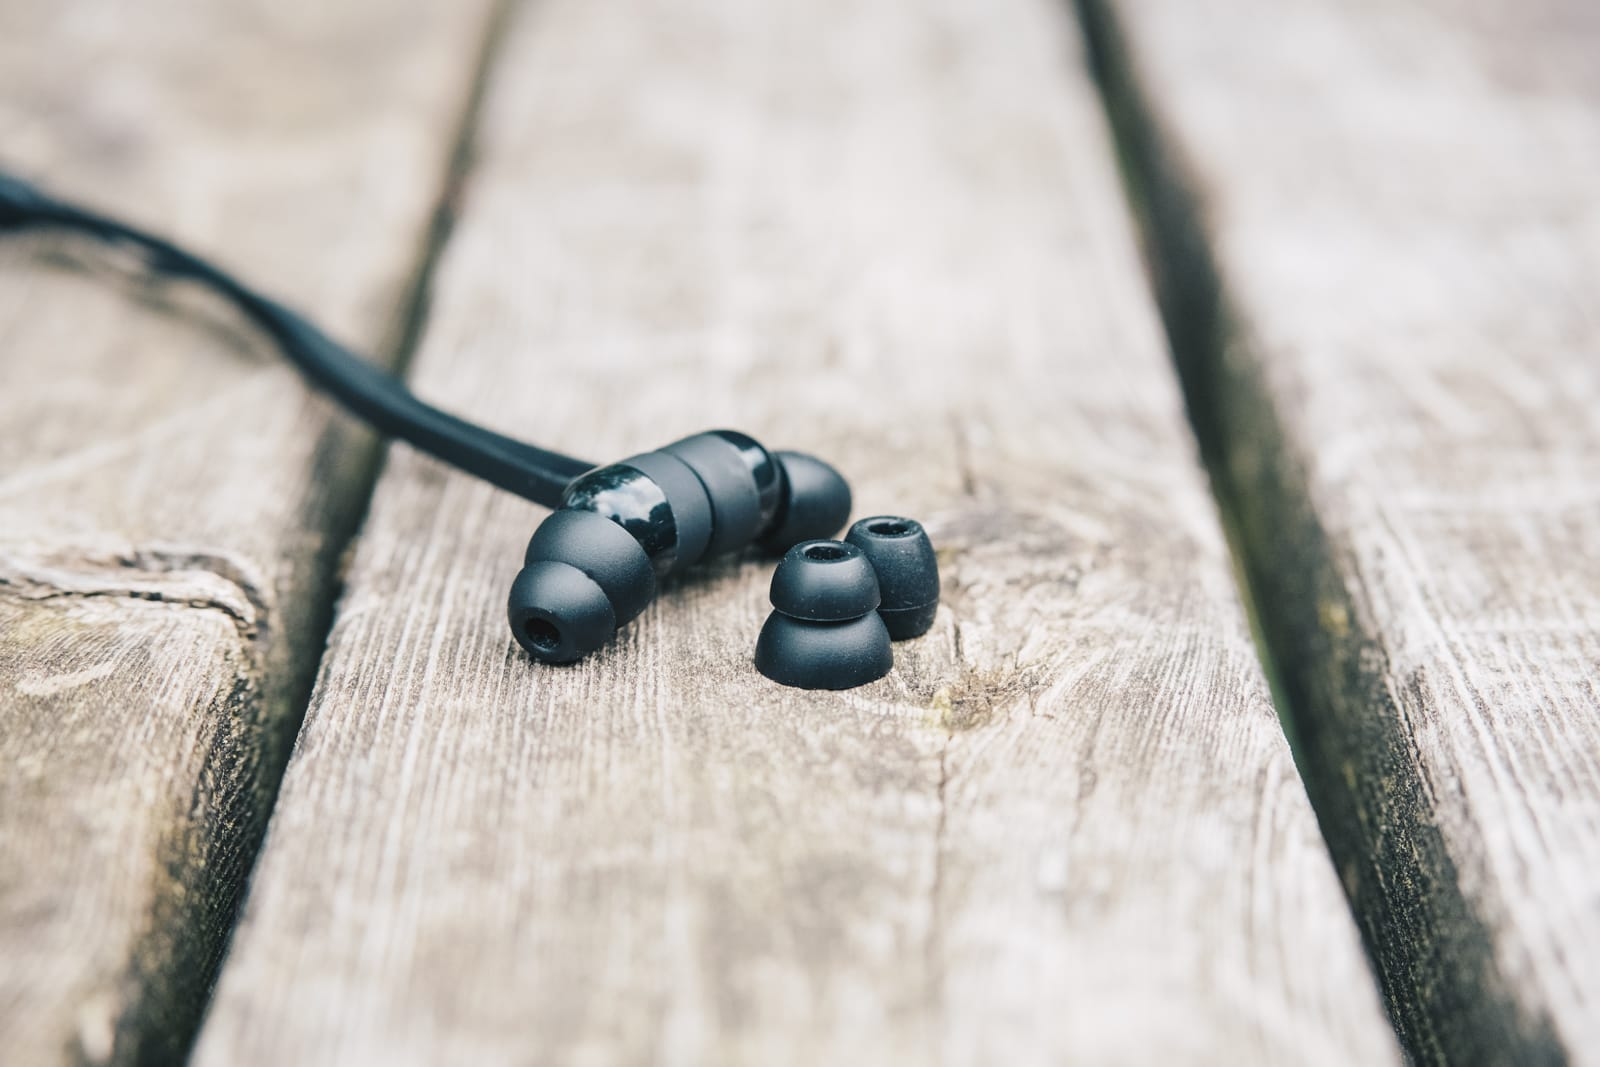 Beatsx earphones tips - lg earbud tips small